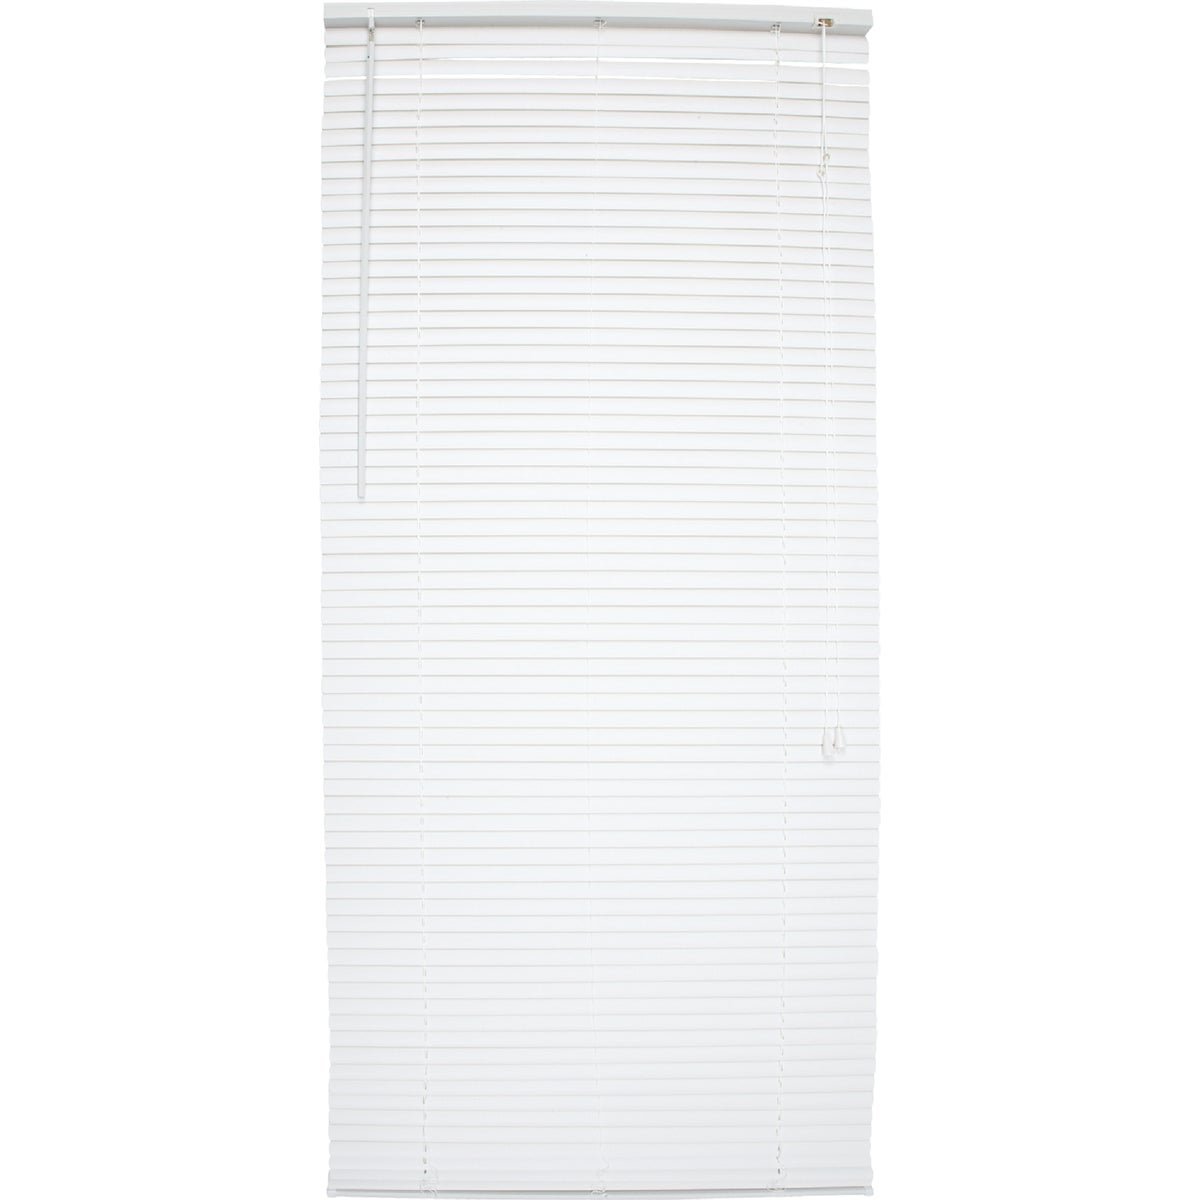 17X64 WHITE MINI BLIND - 614696 by Lotus Wind Incom